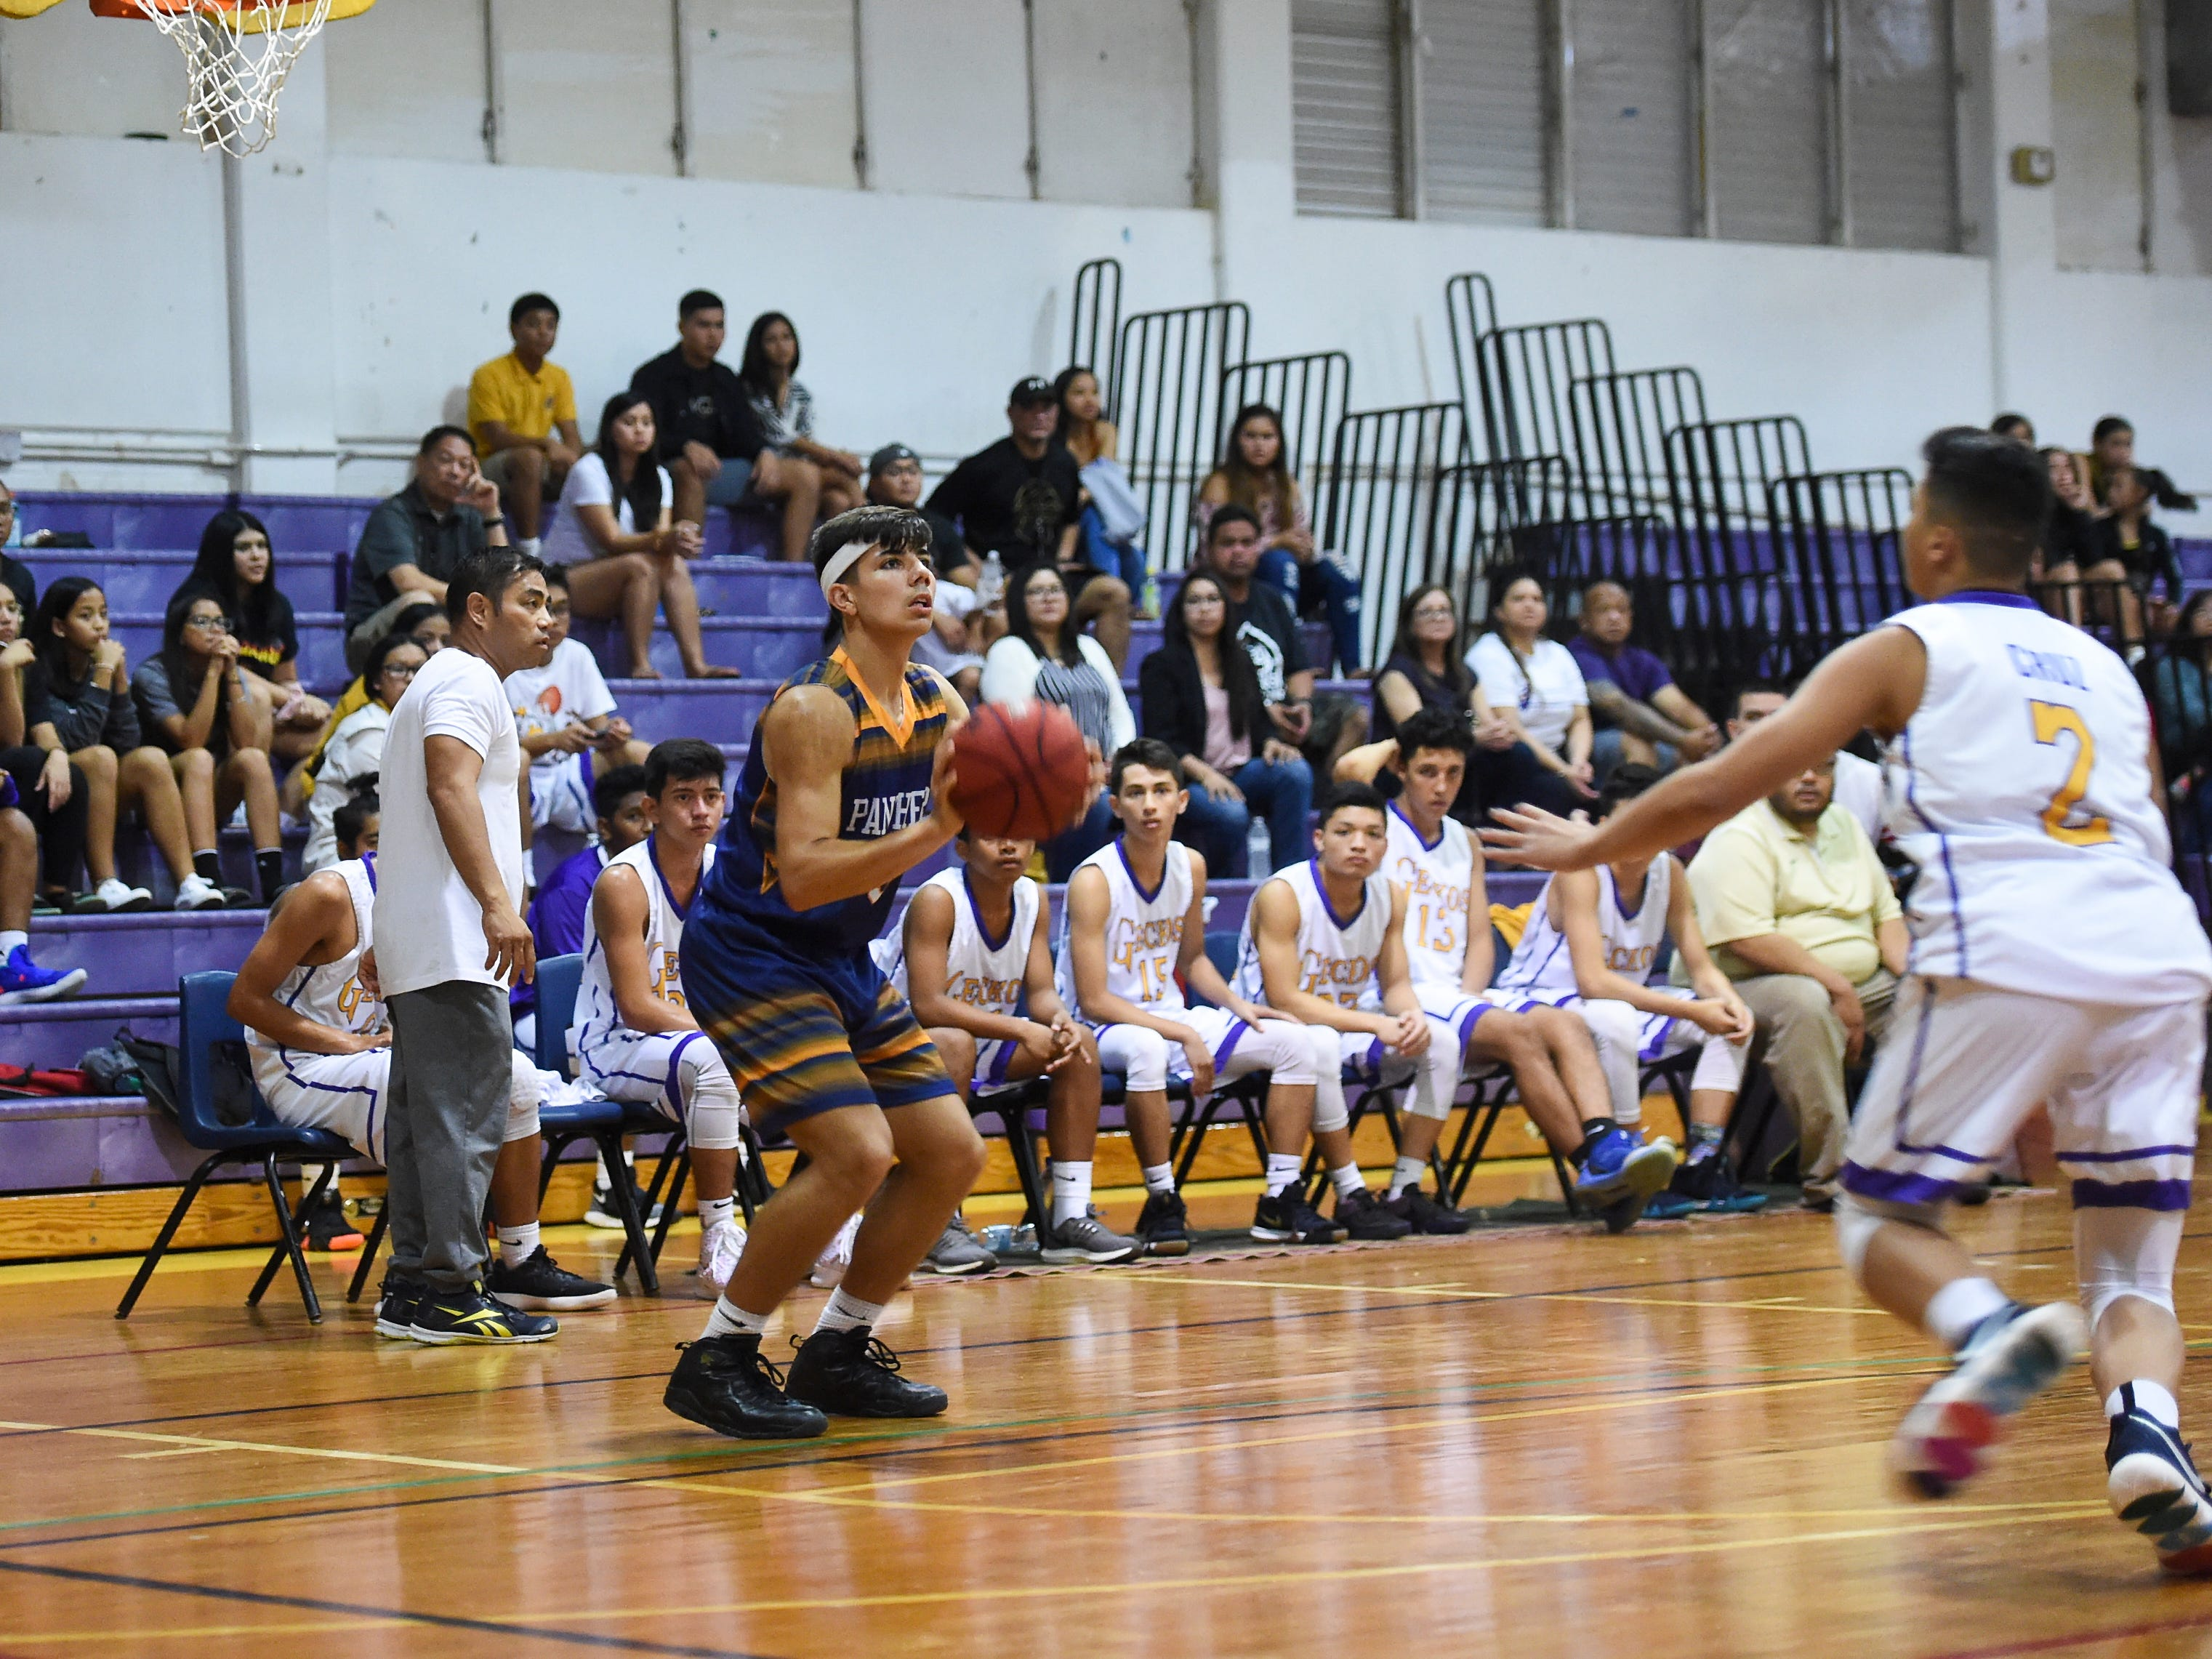 Guam High player Nick Keefe prepares to shoot a 3-pointer against the George Washington Geckos during an Independent Interscholastic Athletic Association of Guam Boys' Basketball game at the GW High School gym on Feb. 2, 2019.